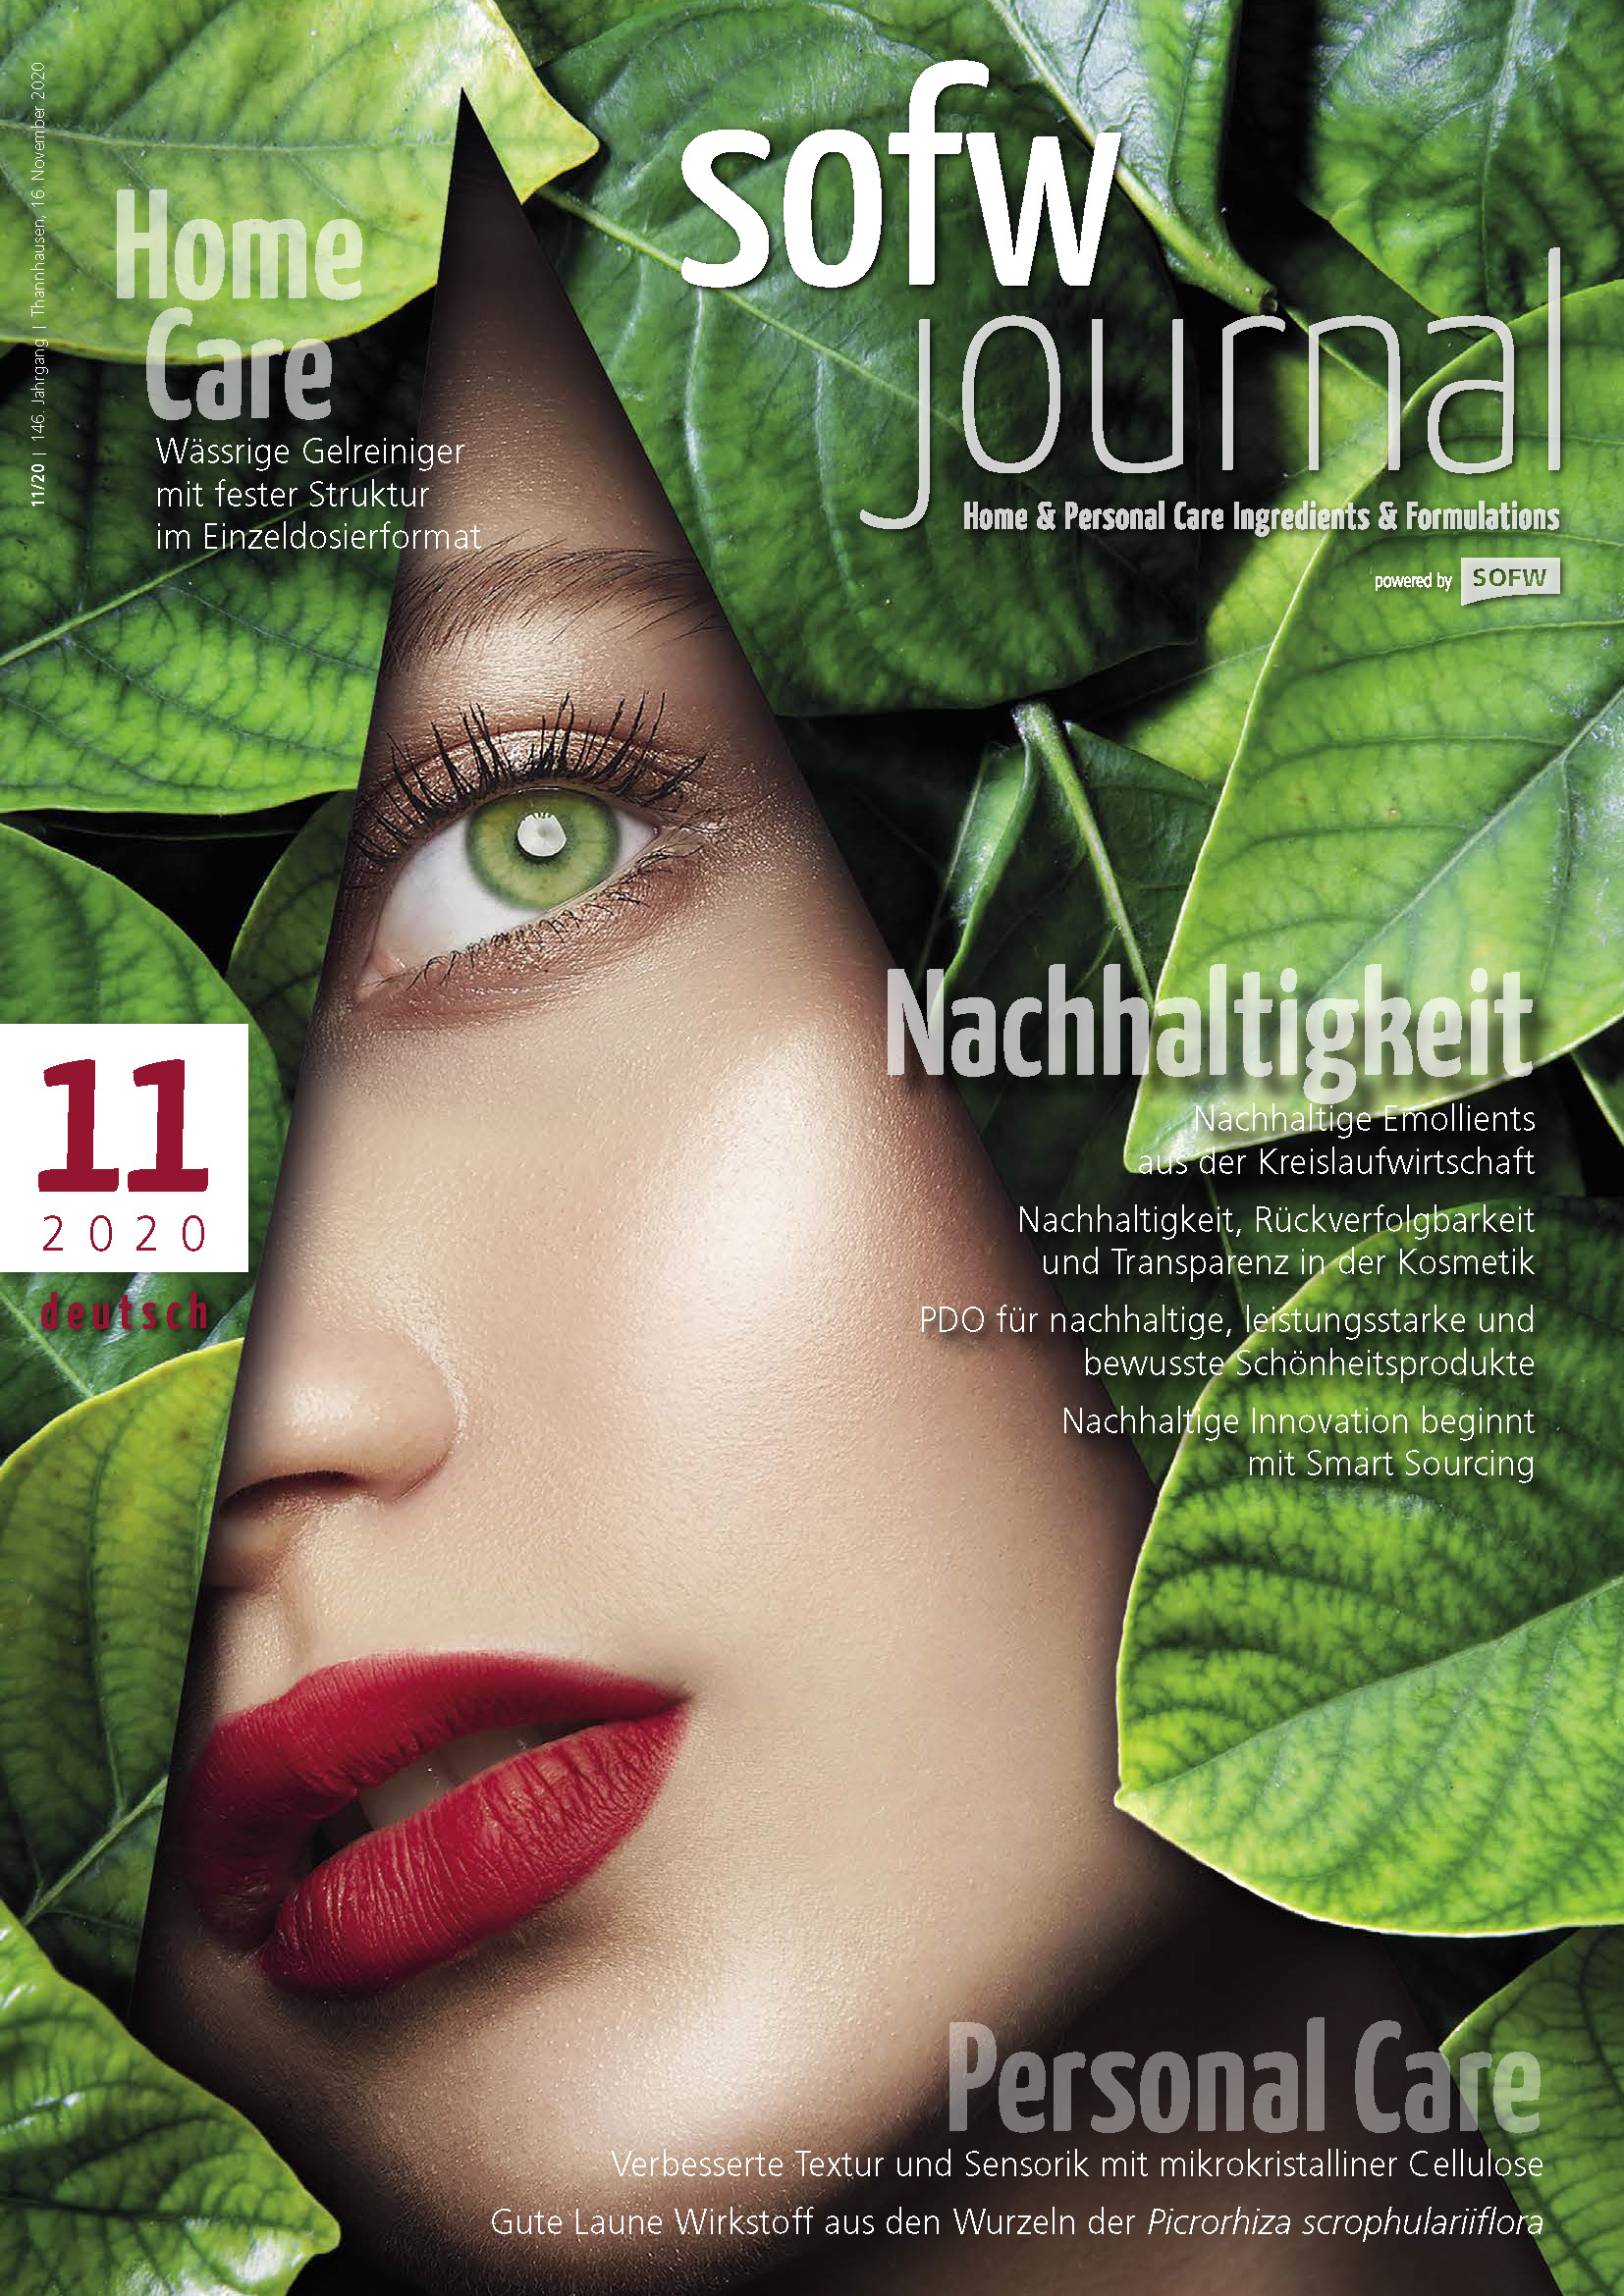 sofw_2011_ger_cover